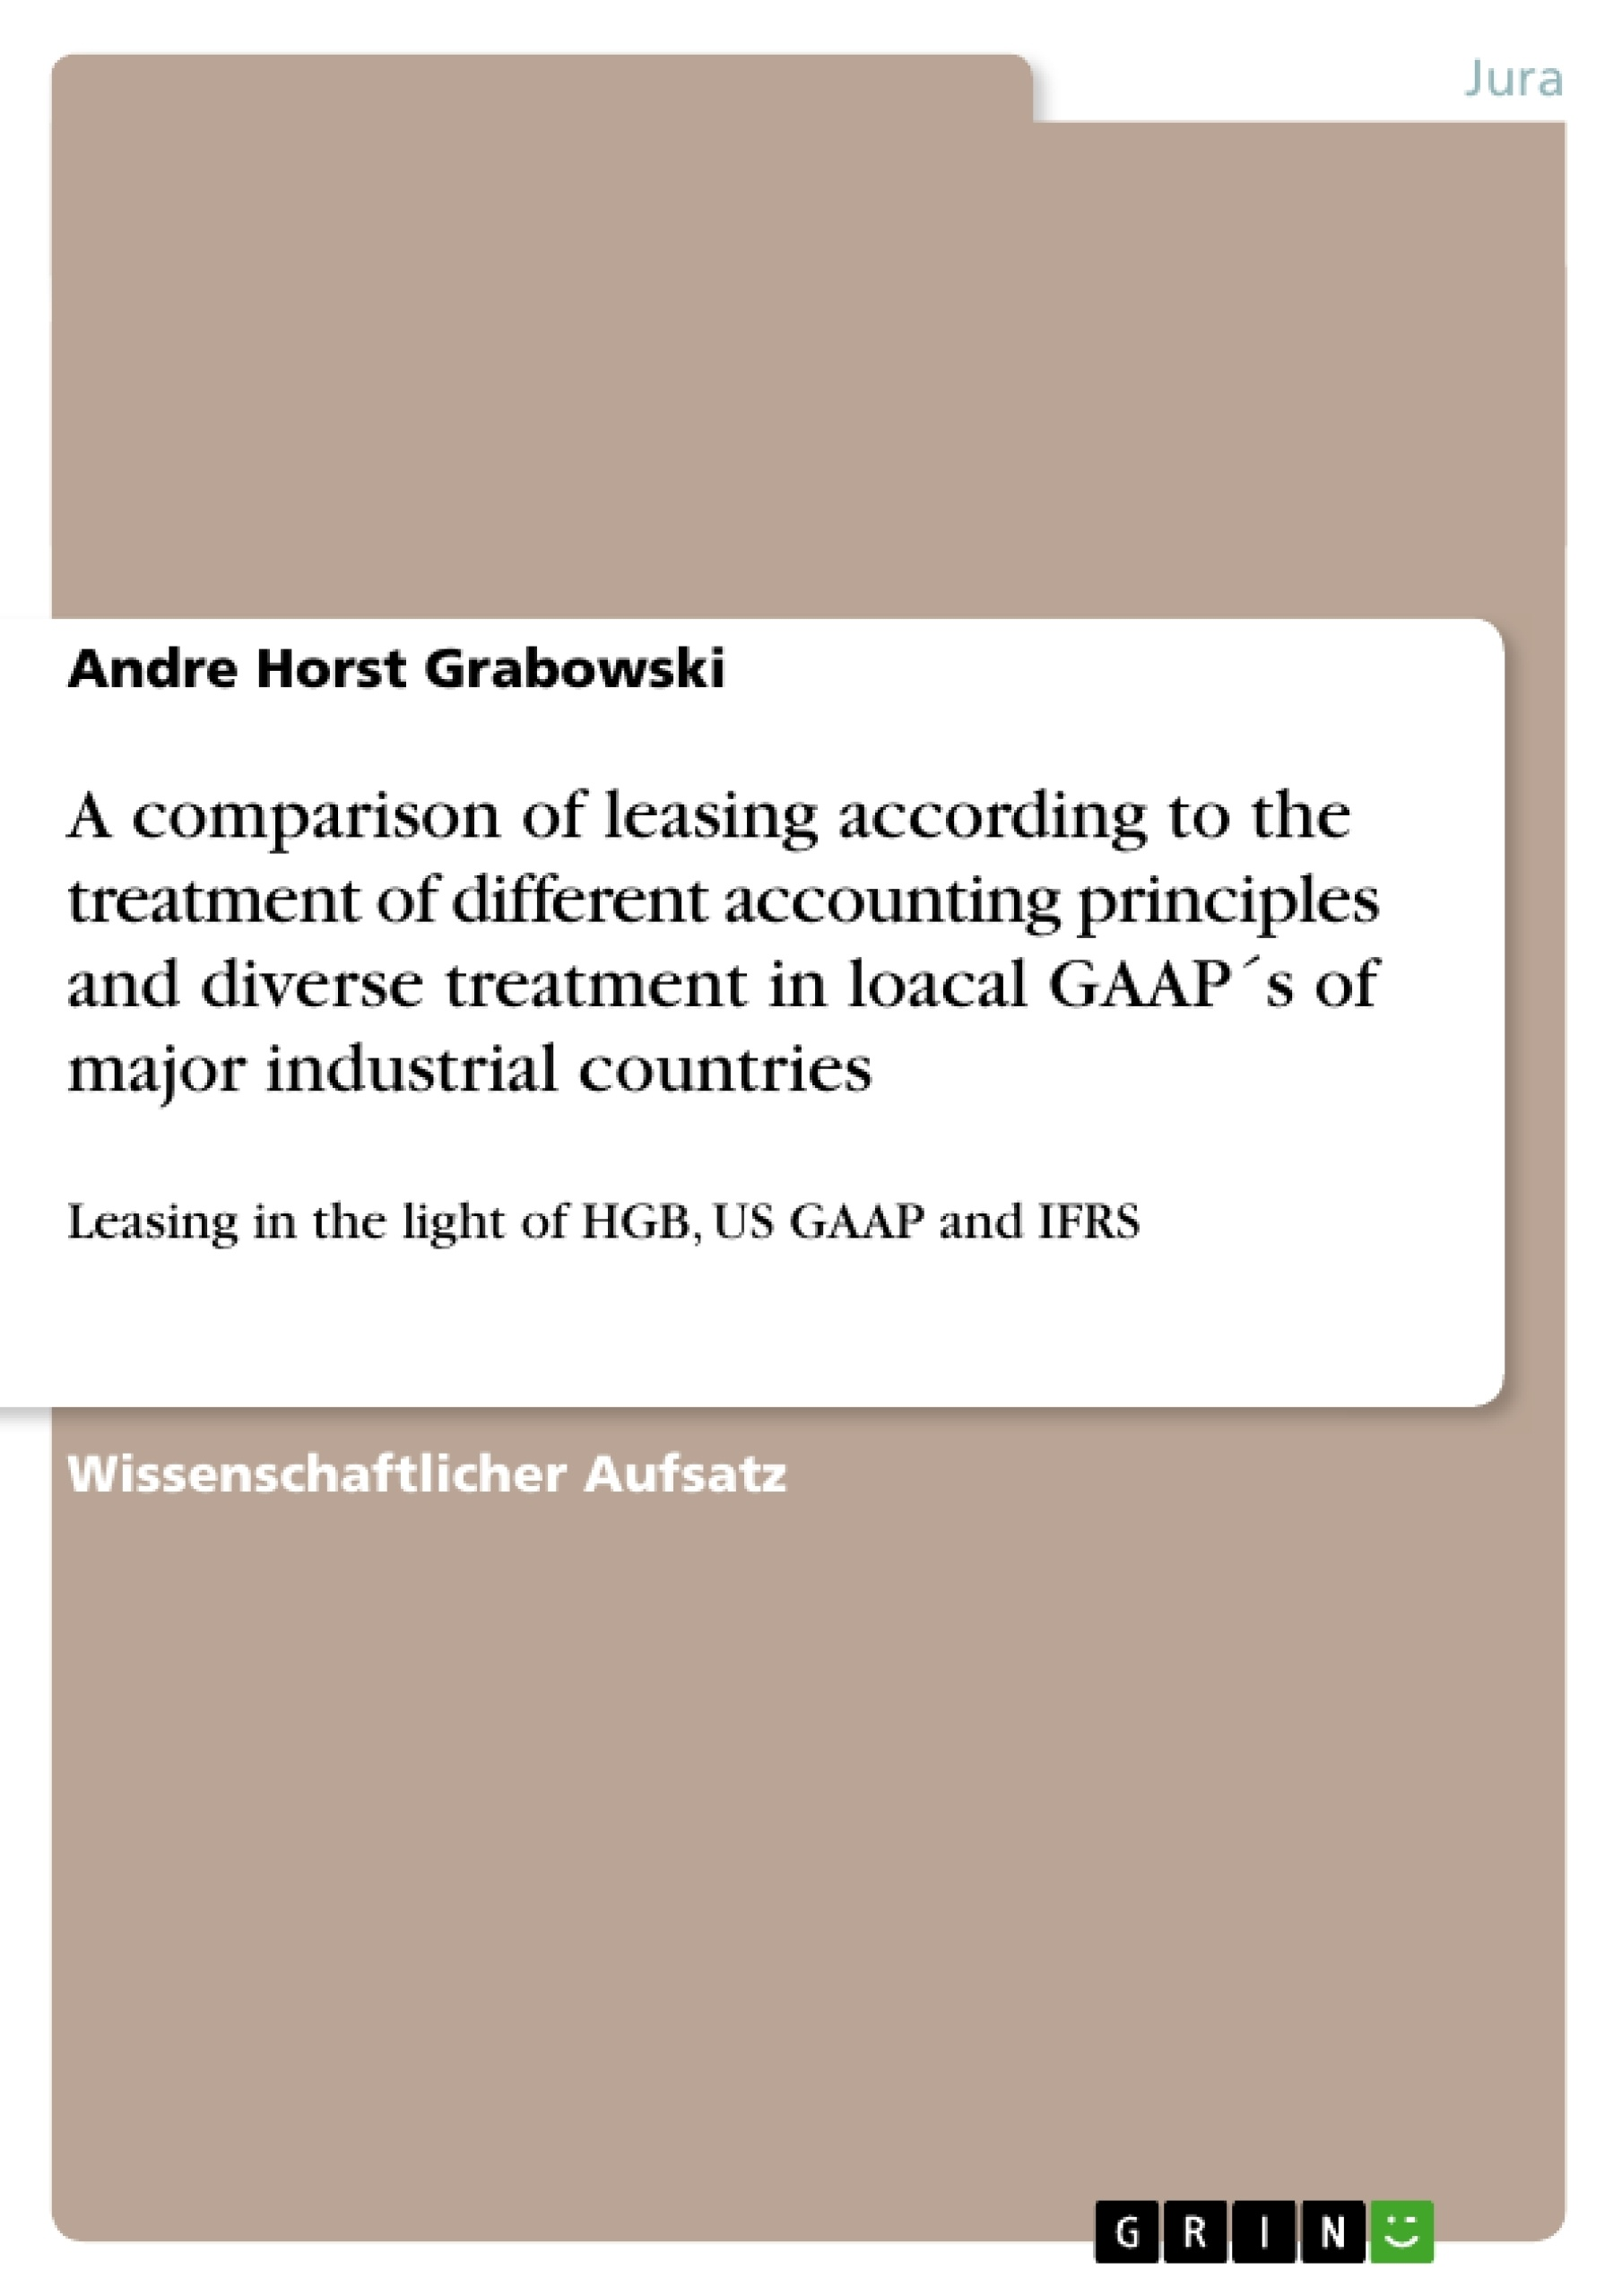 a comparison between us gaap and german hgb What are some of the key differences between ifrs and us or infrequent items listed on an income statement prepared according to either us gaap or ifrs.